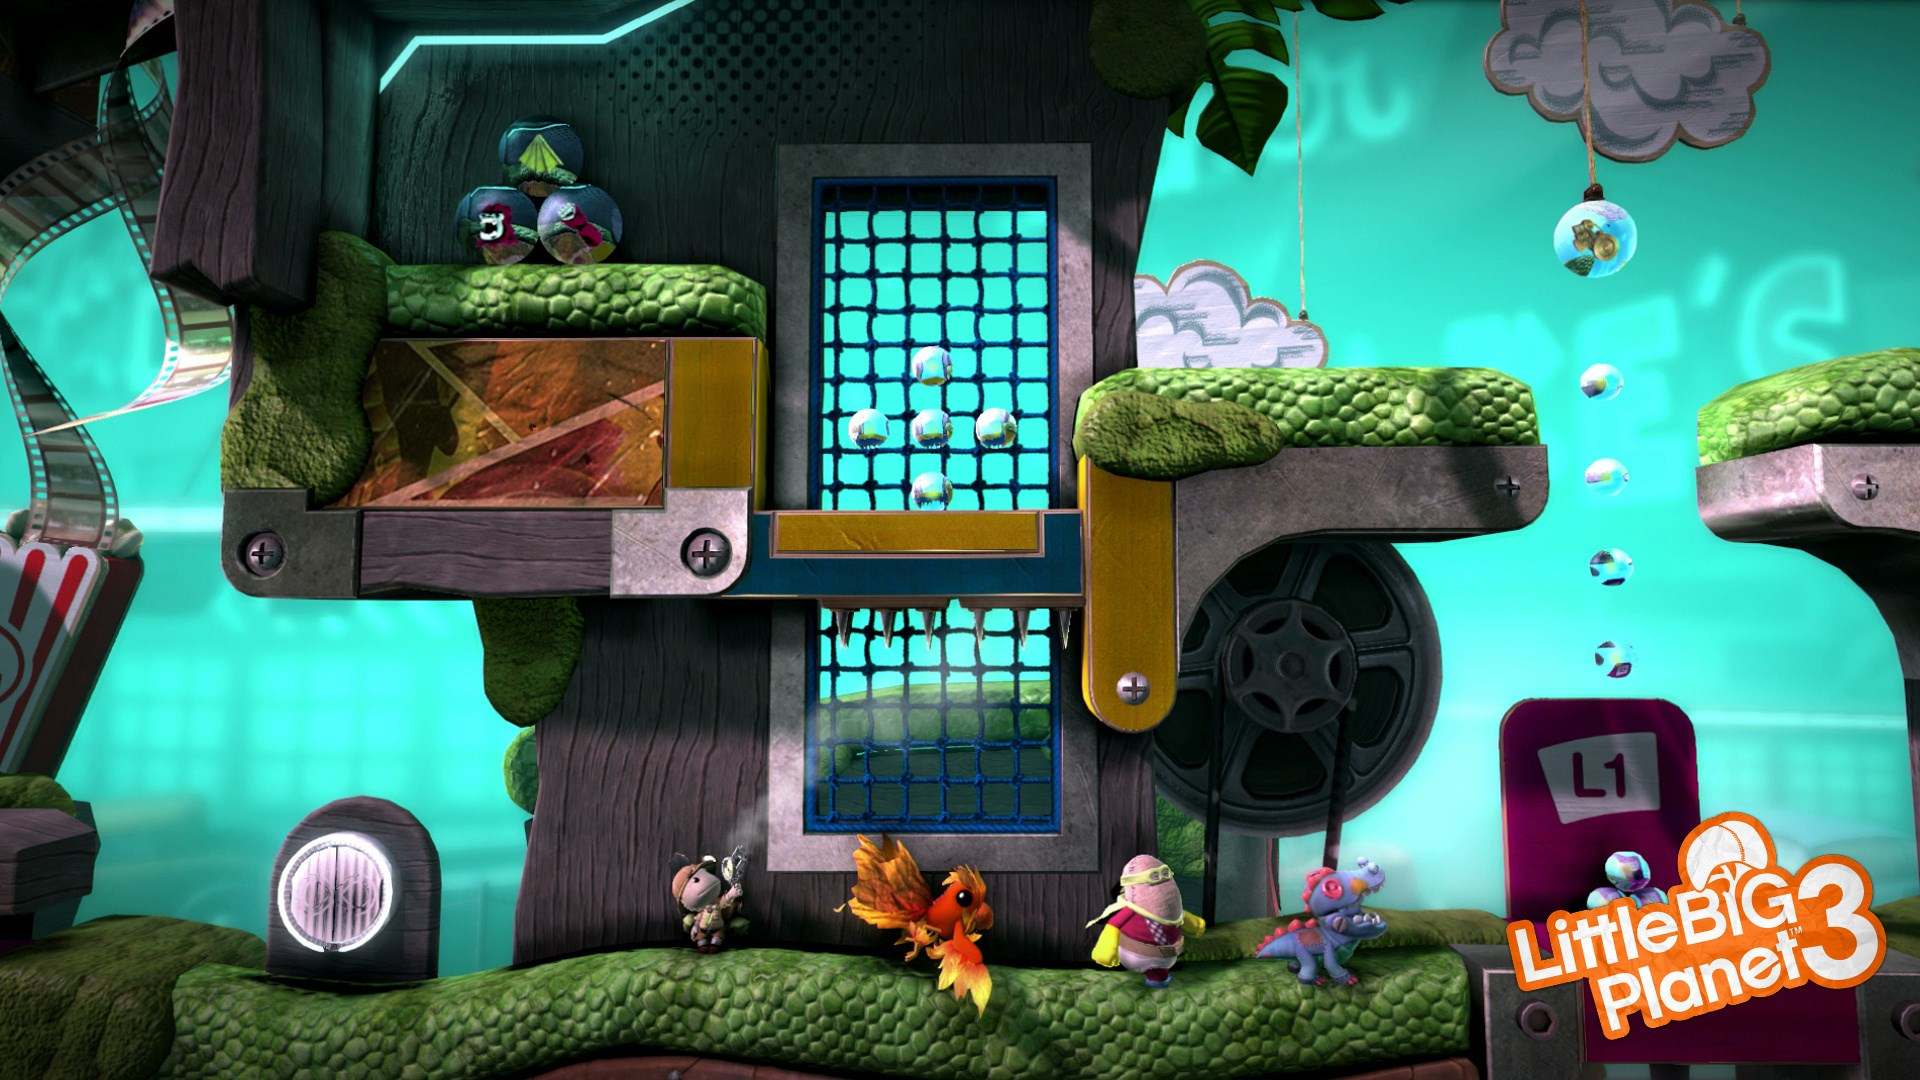 New characters with new abilities don't matter as much as potential new level creation tools in <i>LittleBigPlanet 3</i>.